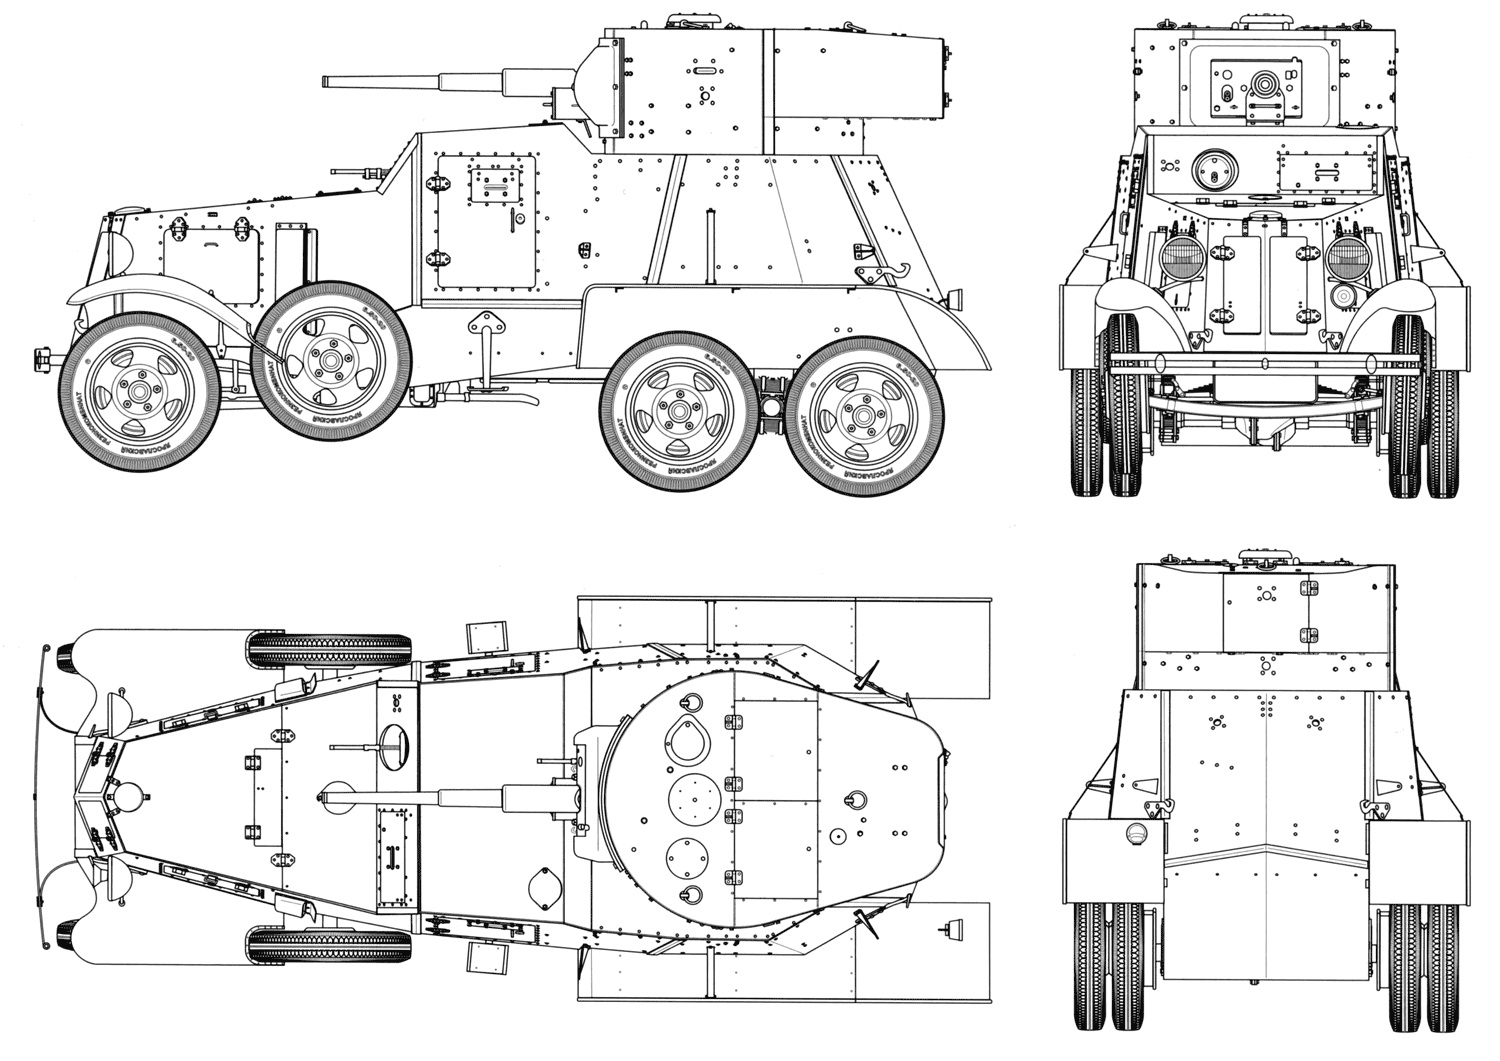 Tank blueprints 2 file mod db Blueprint designer free